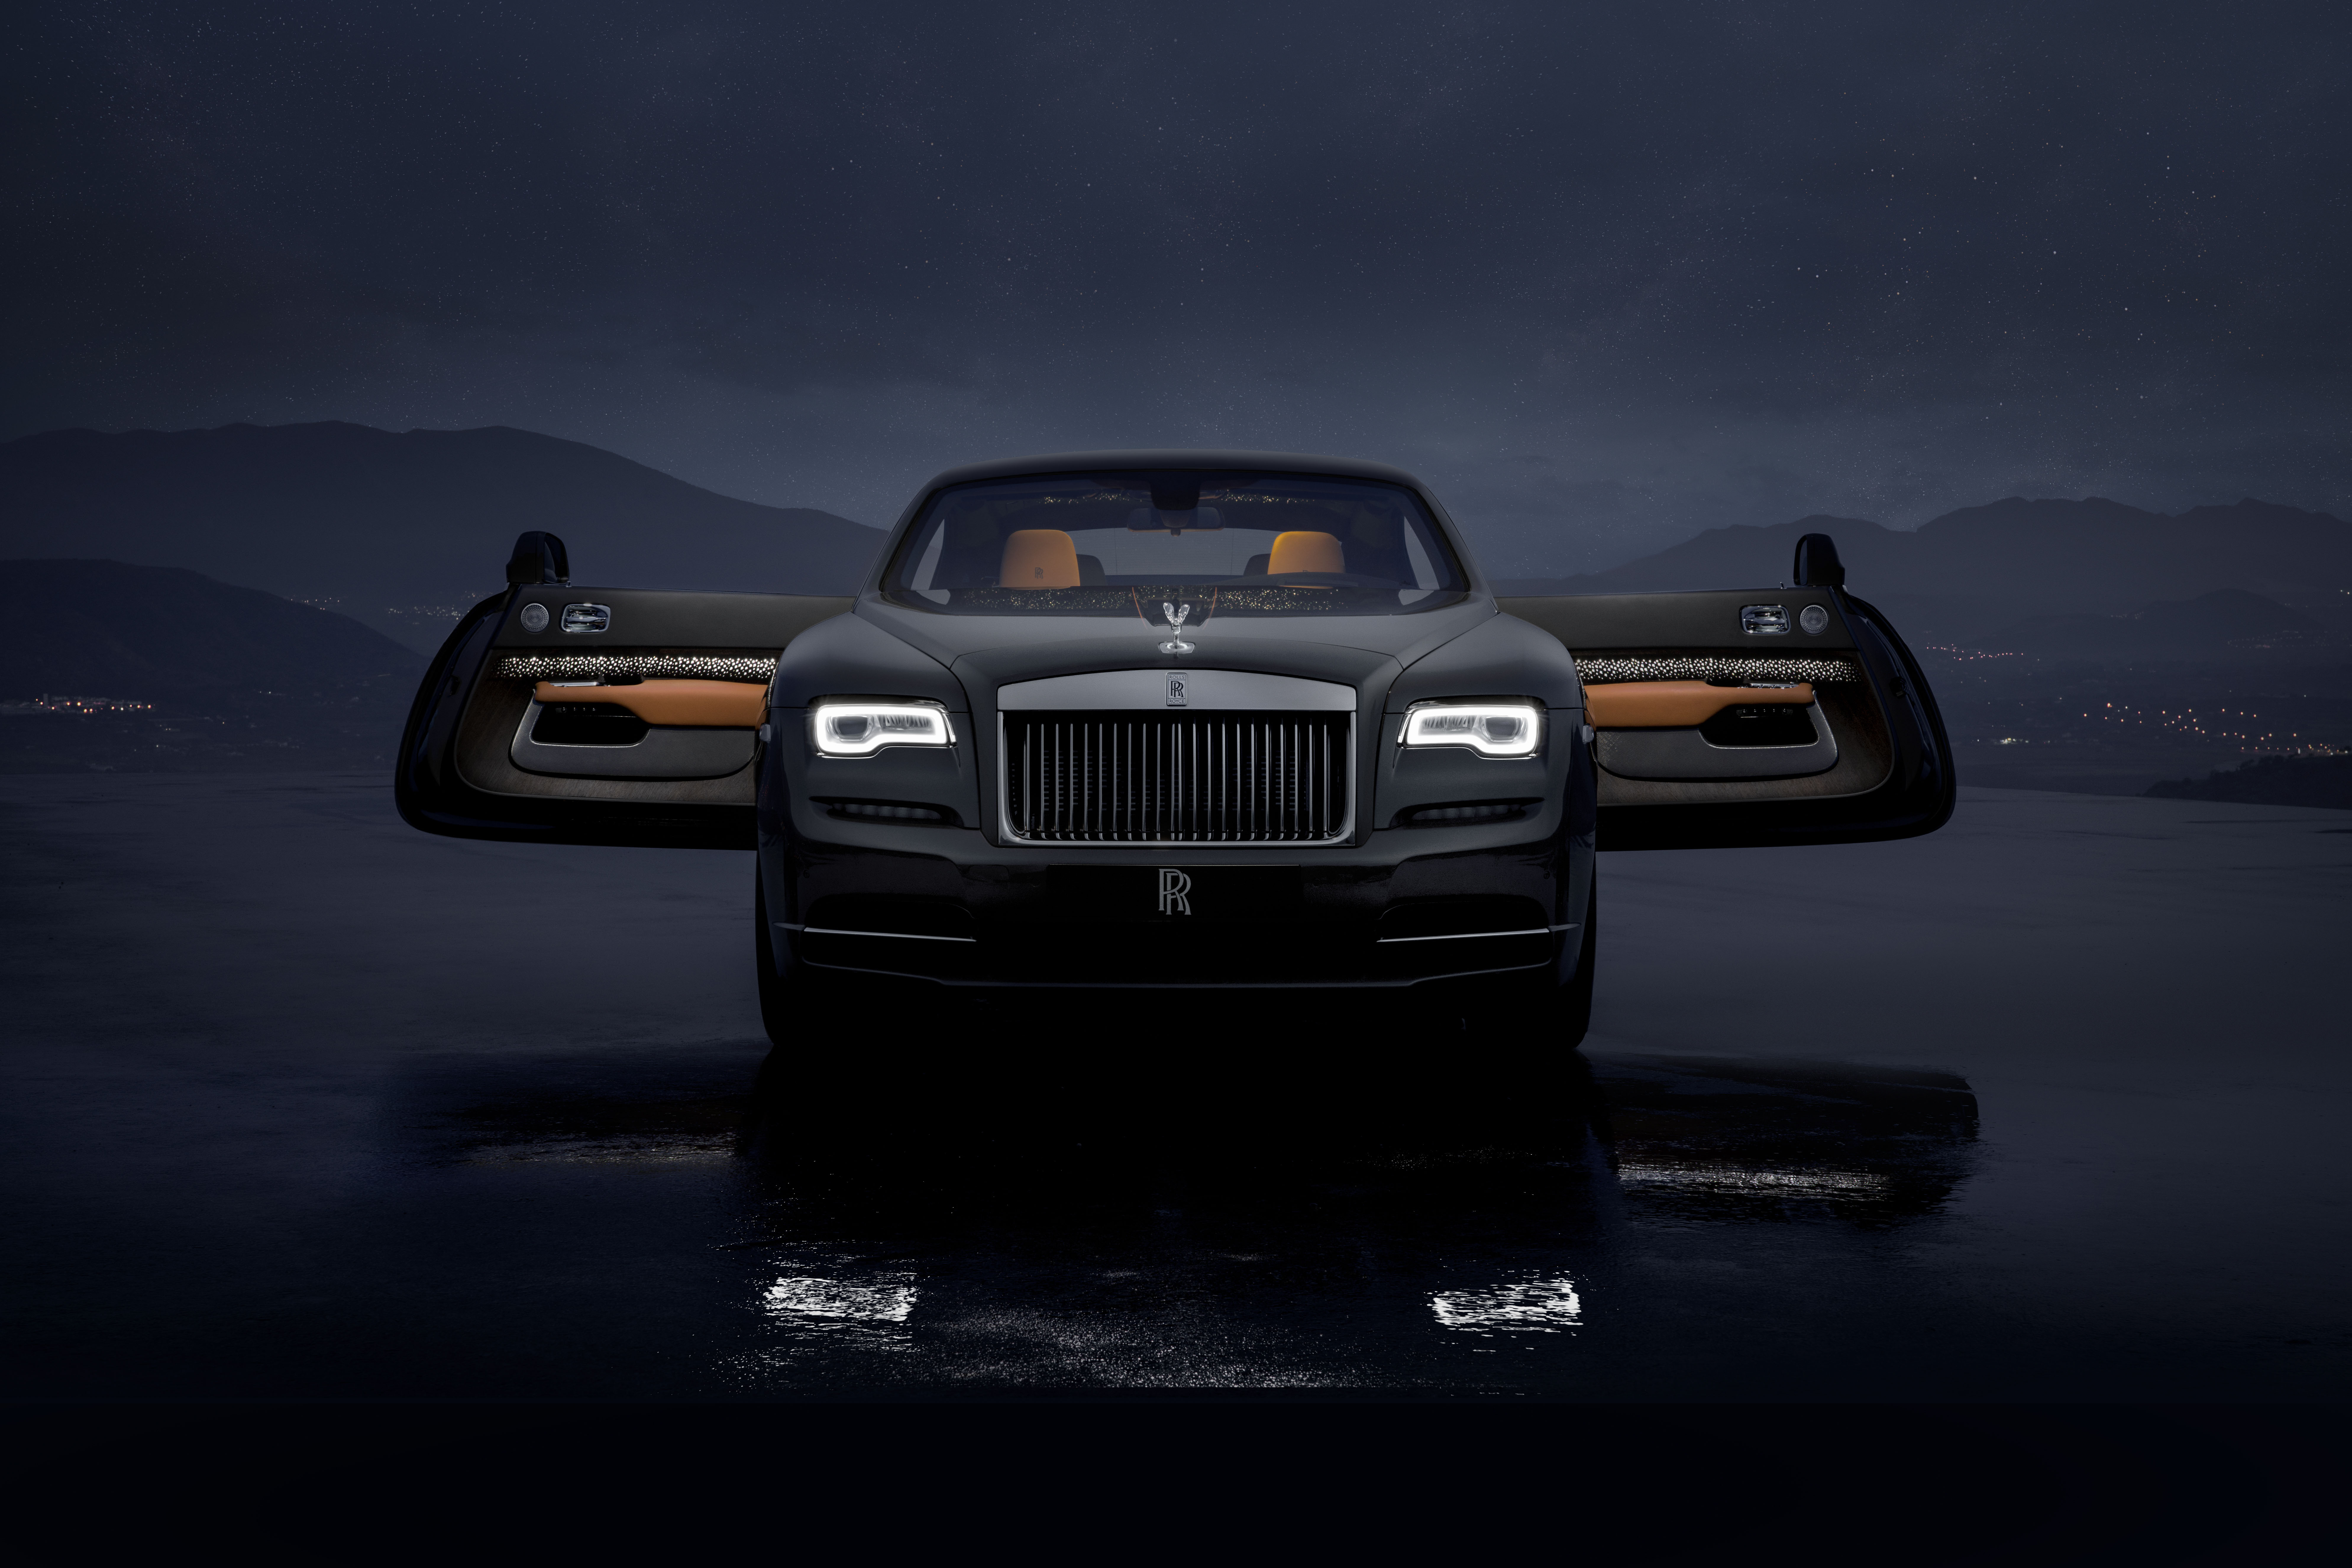 Rolls Royce Light Up The Bespoke Sector With The Wraith